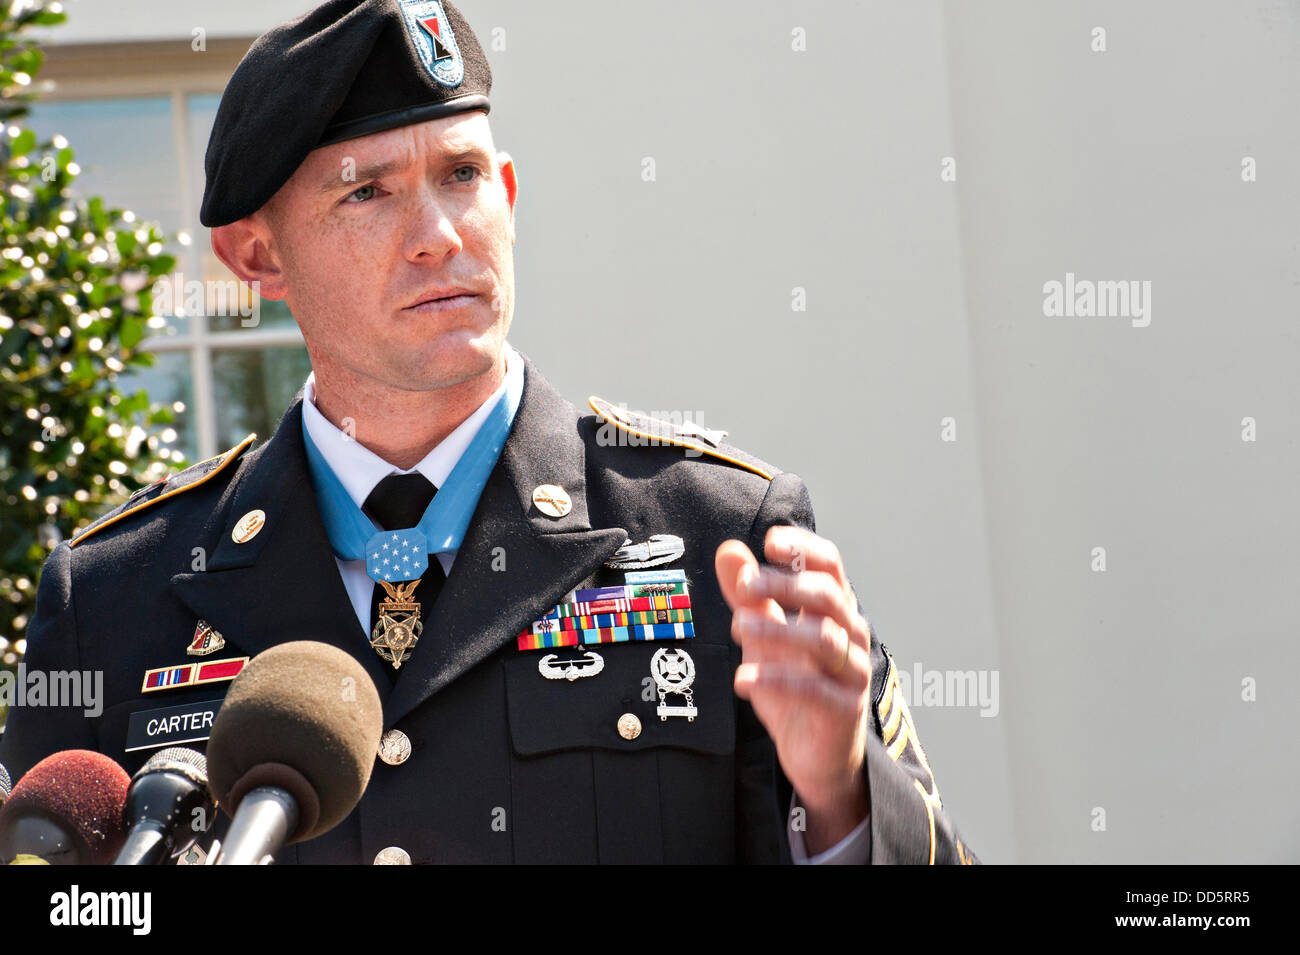 US Army Staff Sgt. Ty Michael Carter speaks to the press after receiving the Medal of Honor during a ceremony at - Stock Image